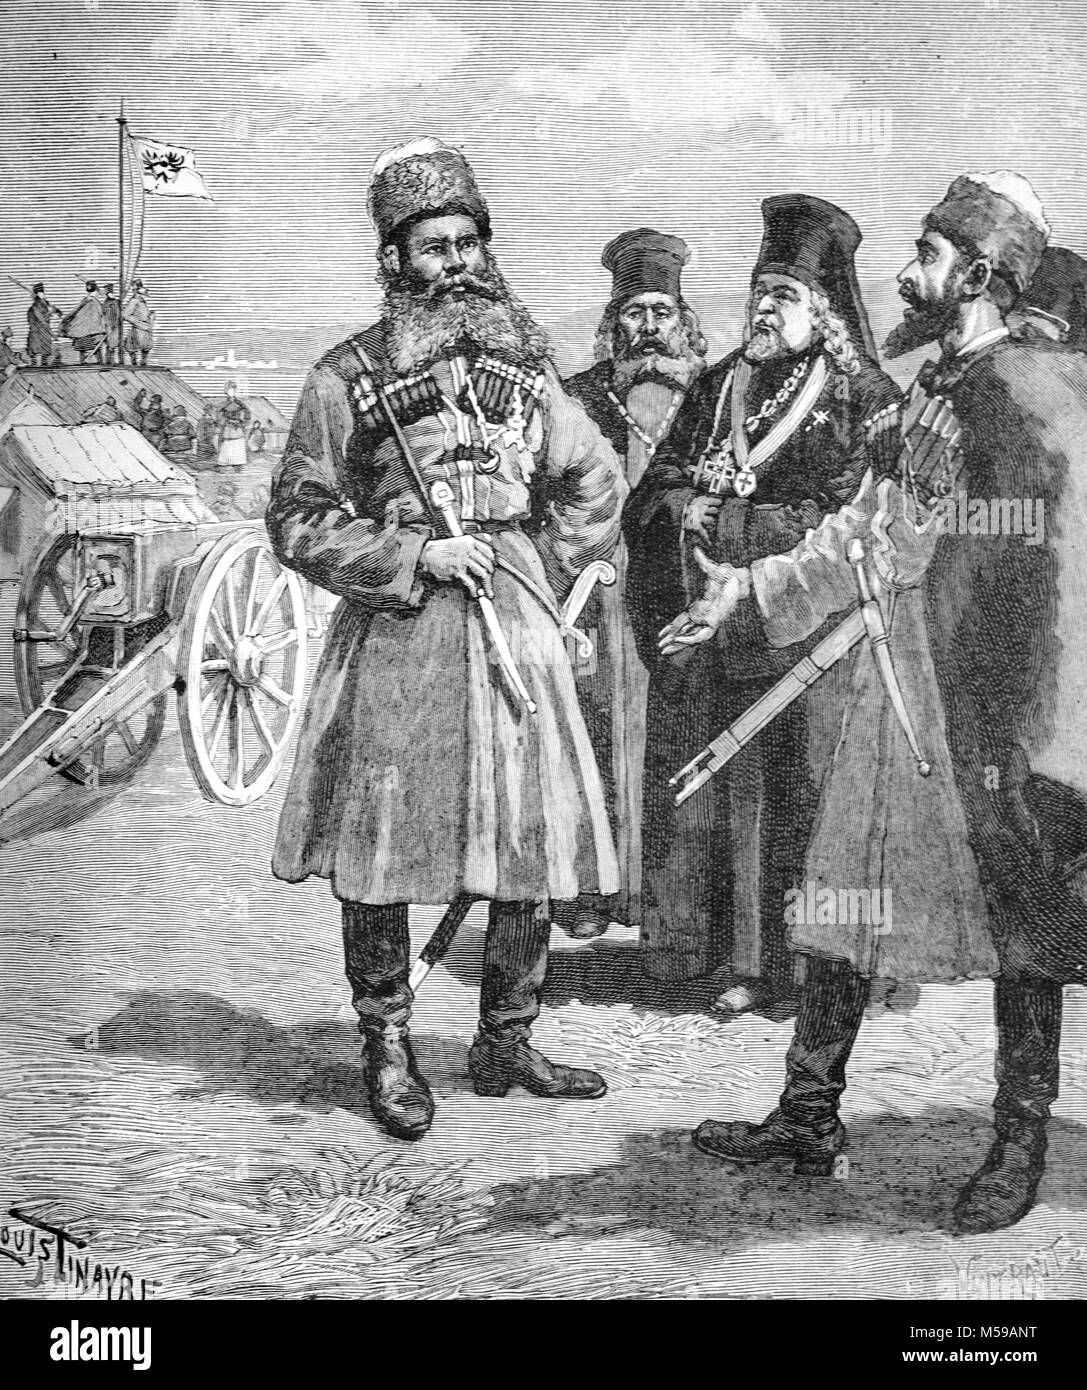 Nilolay Ivanovitch Achinov (b.1856) a Russian Adventurer and Cossack, during his 1888 expedition to French Somaliland - Stock Image